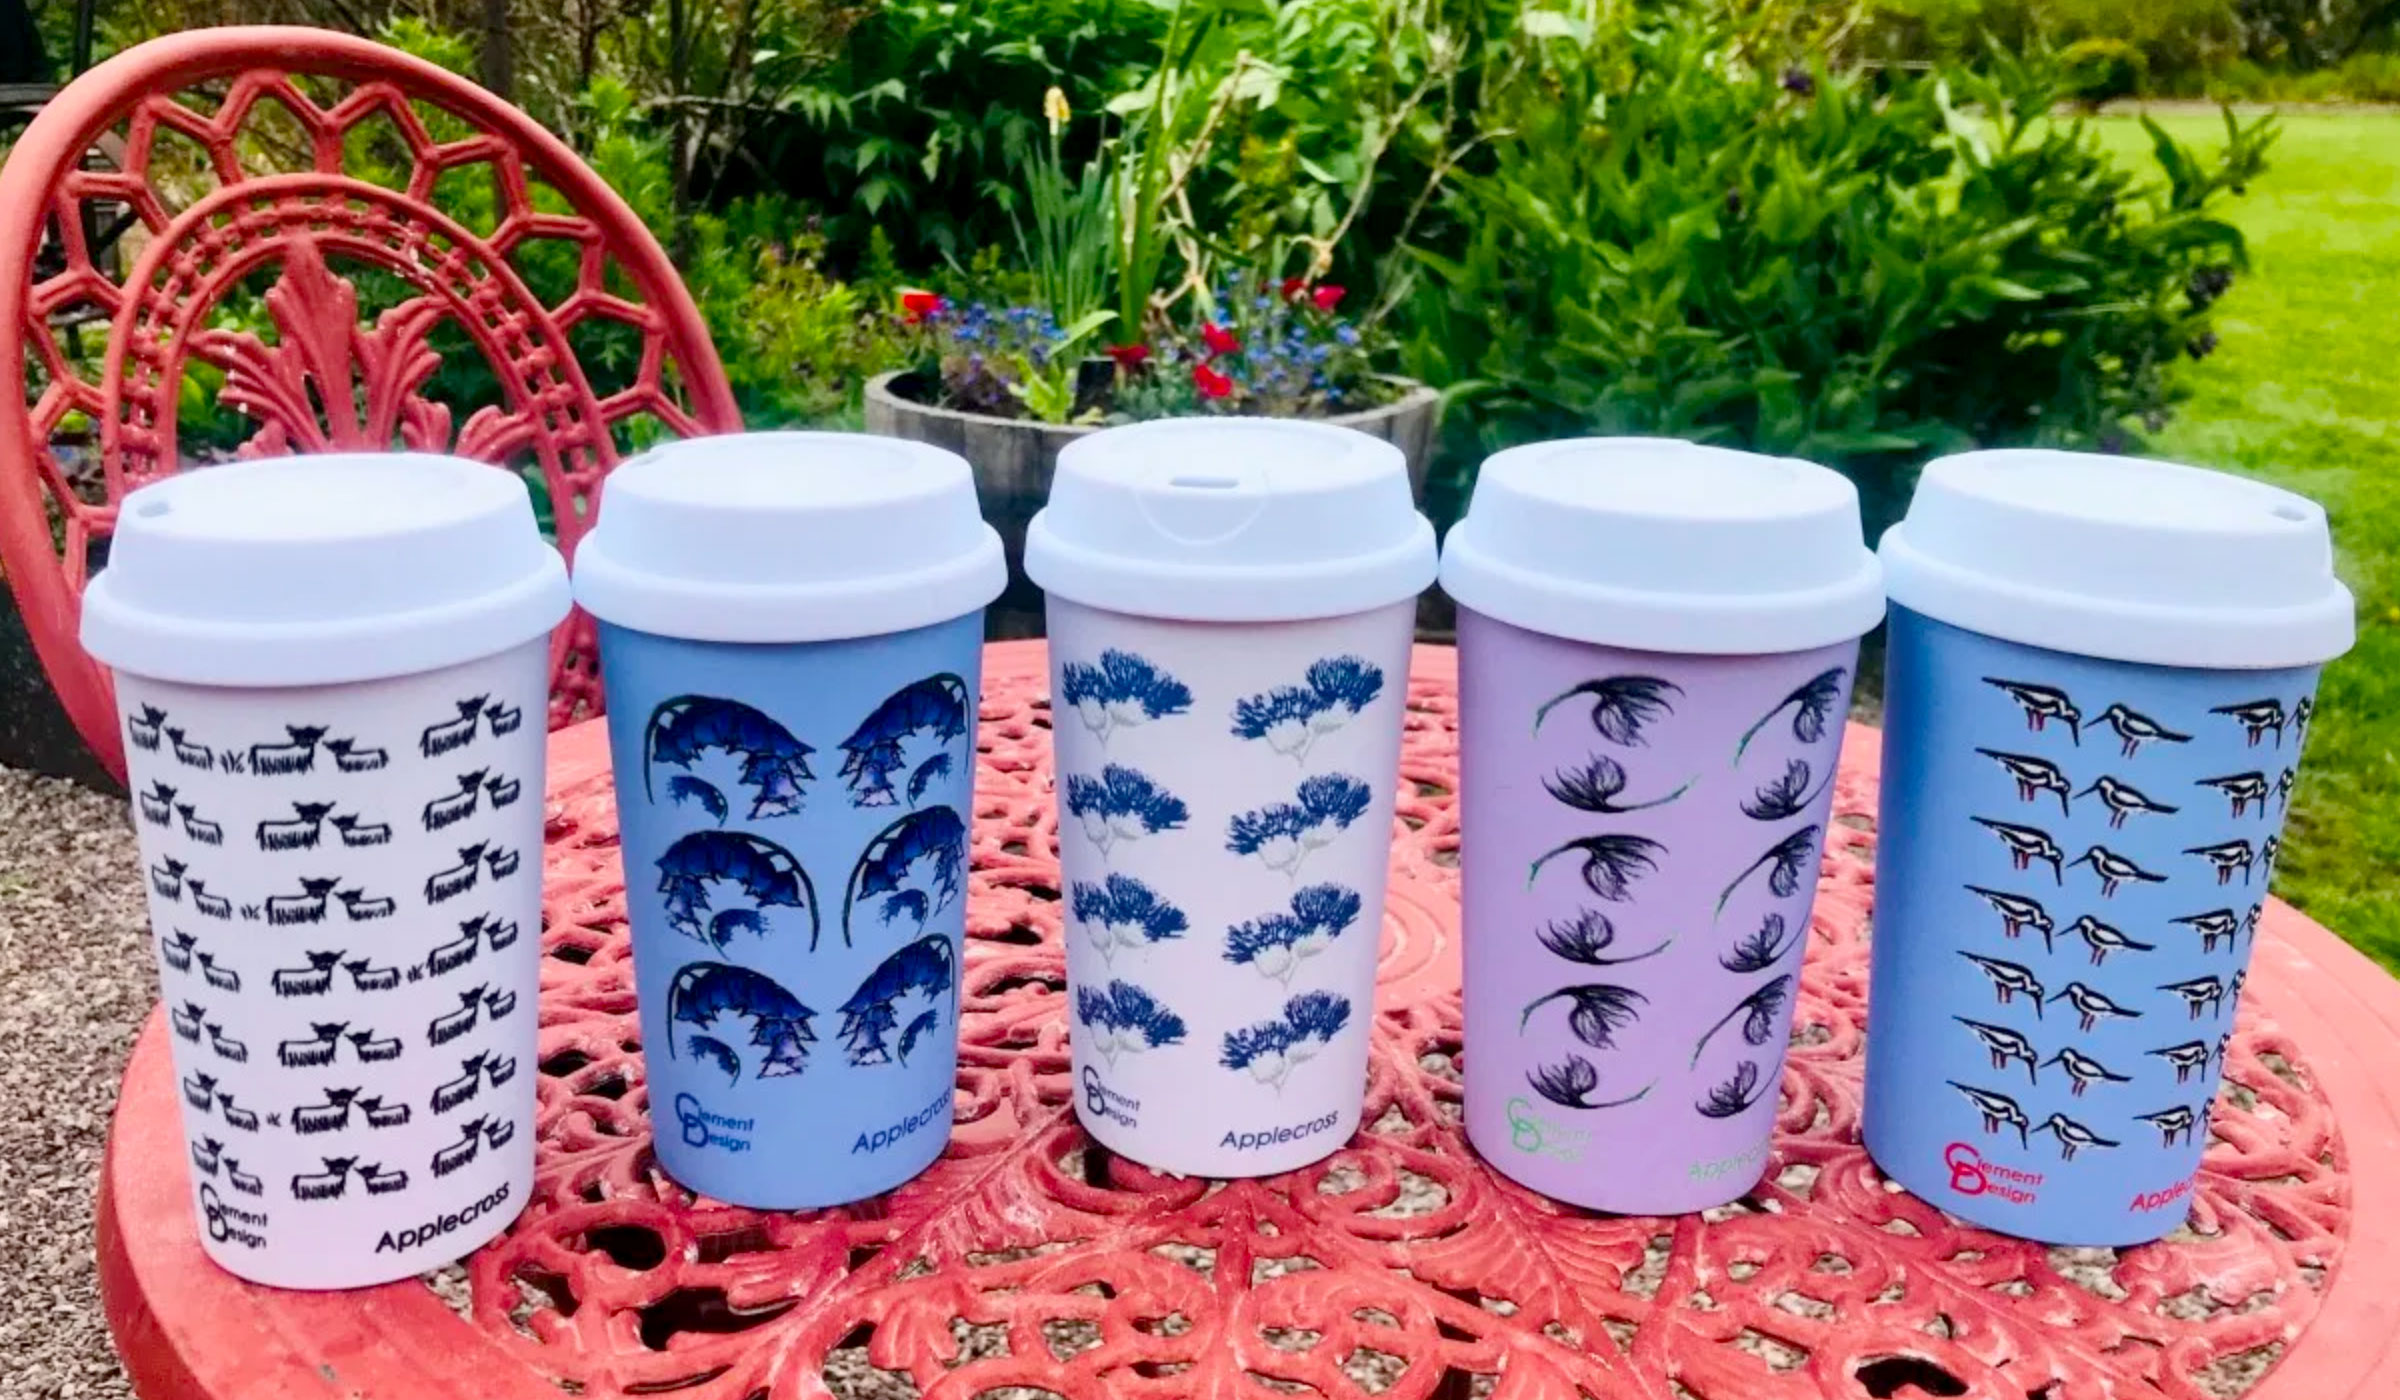 Highland Coo Thistle Bluebells Cotton Grass Oyster Catchers Travel Mugs by Clement Design